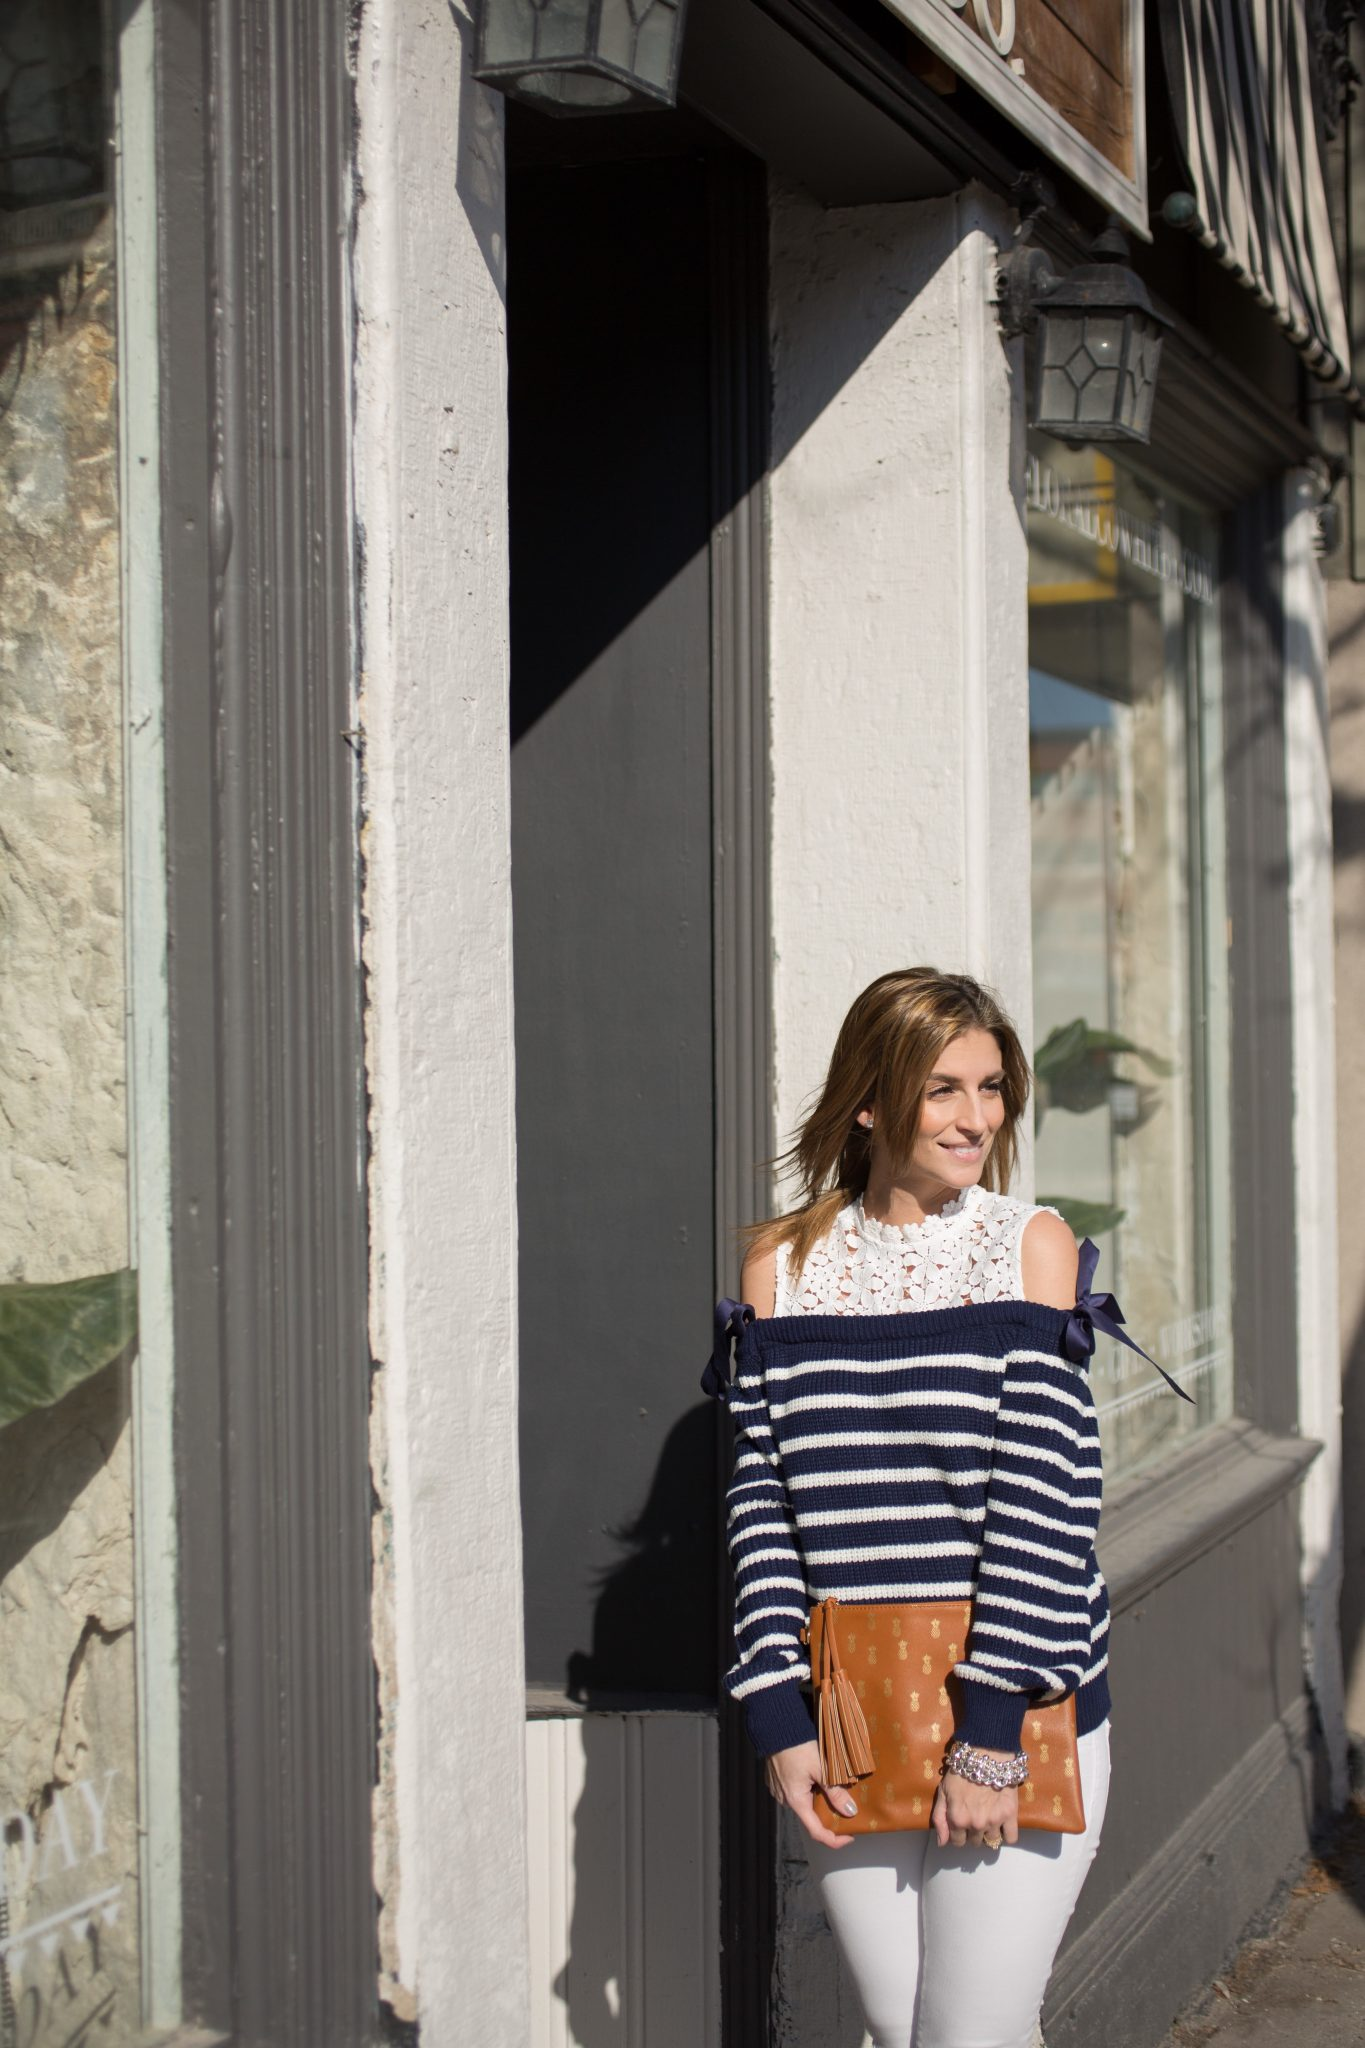 Chicwish Sweet Evocation Cold-shoulder Sweater in Navy Stripes, white jeans, black suede boots, pineapple clutch